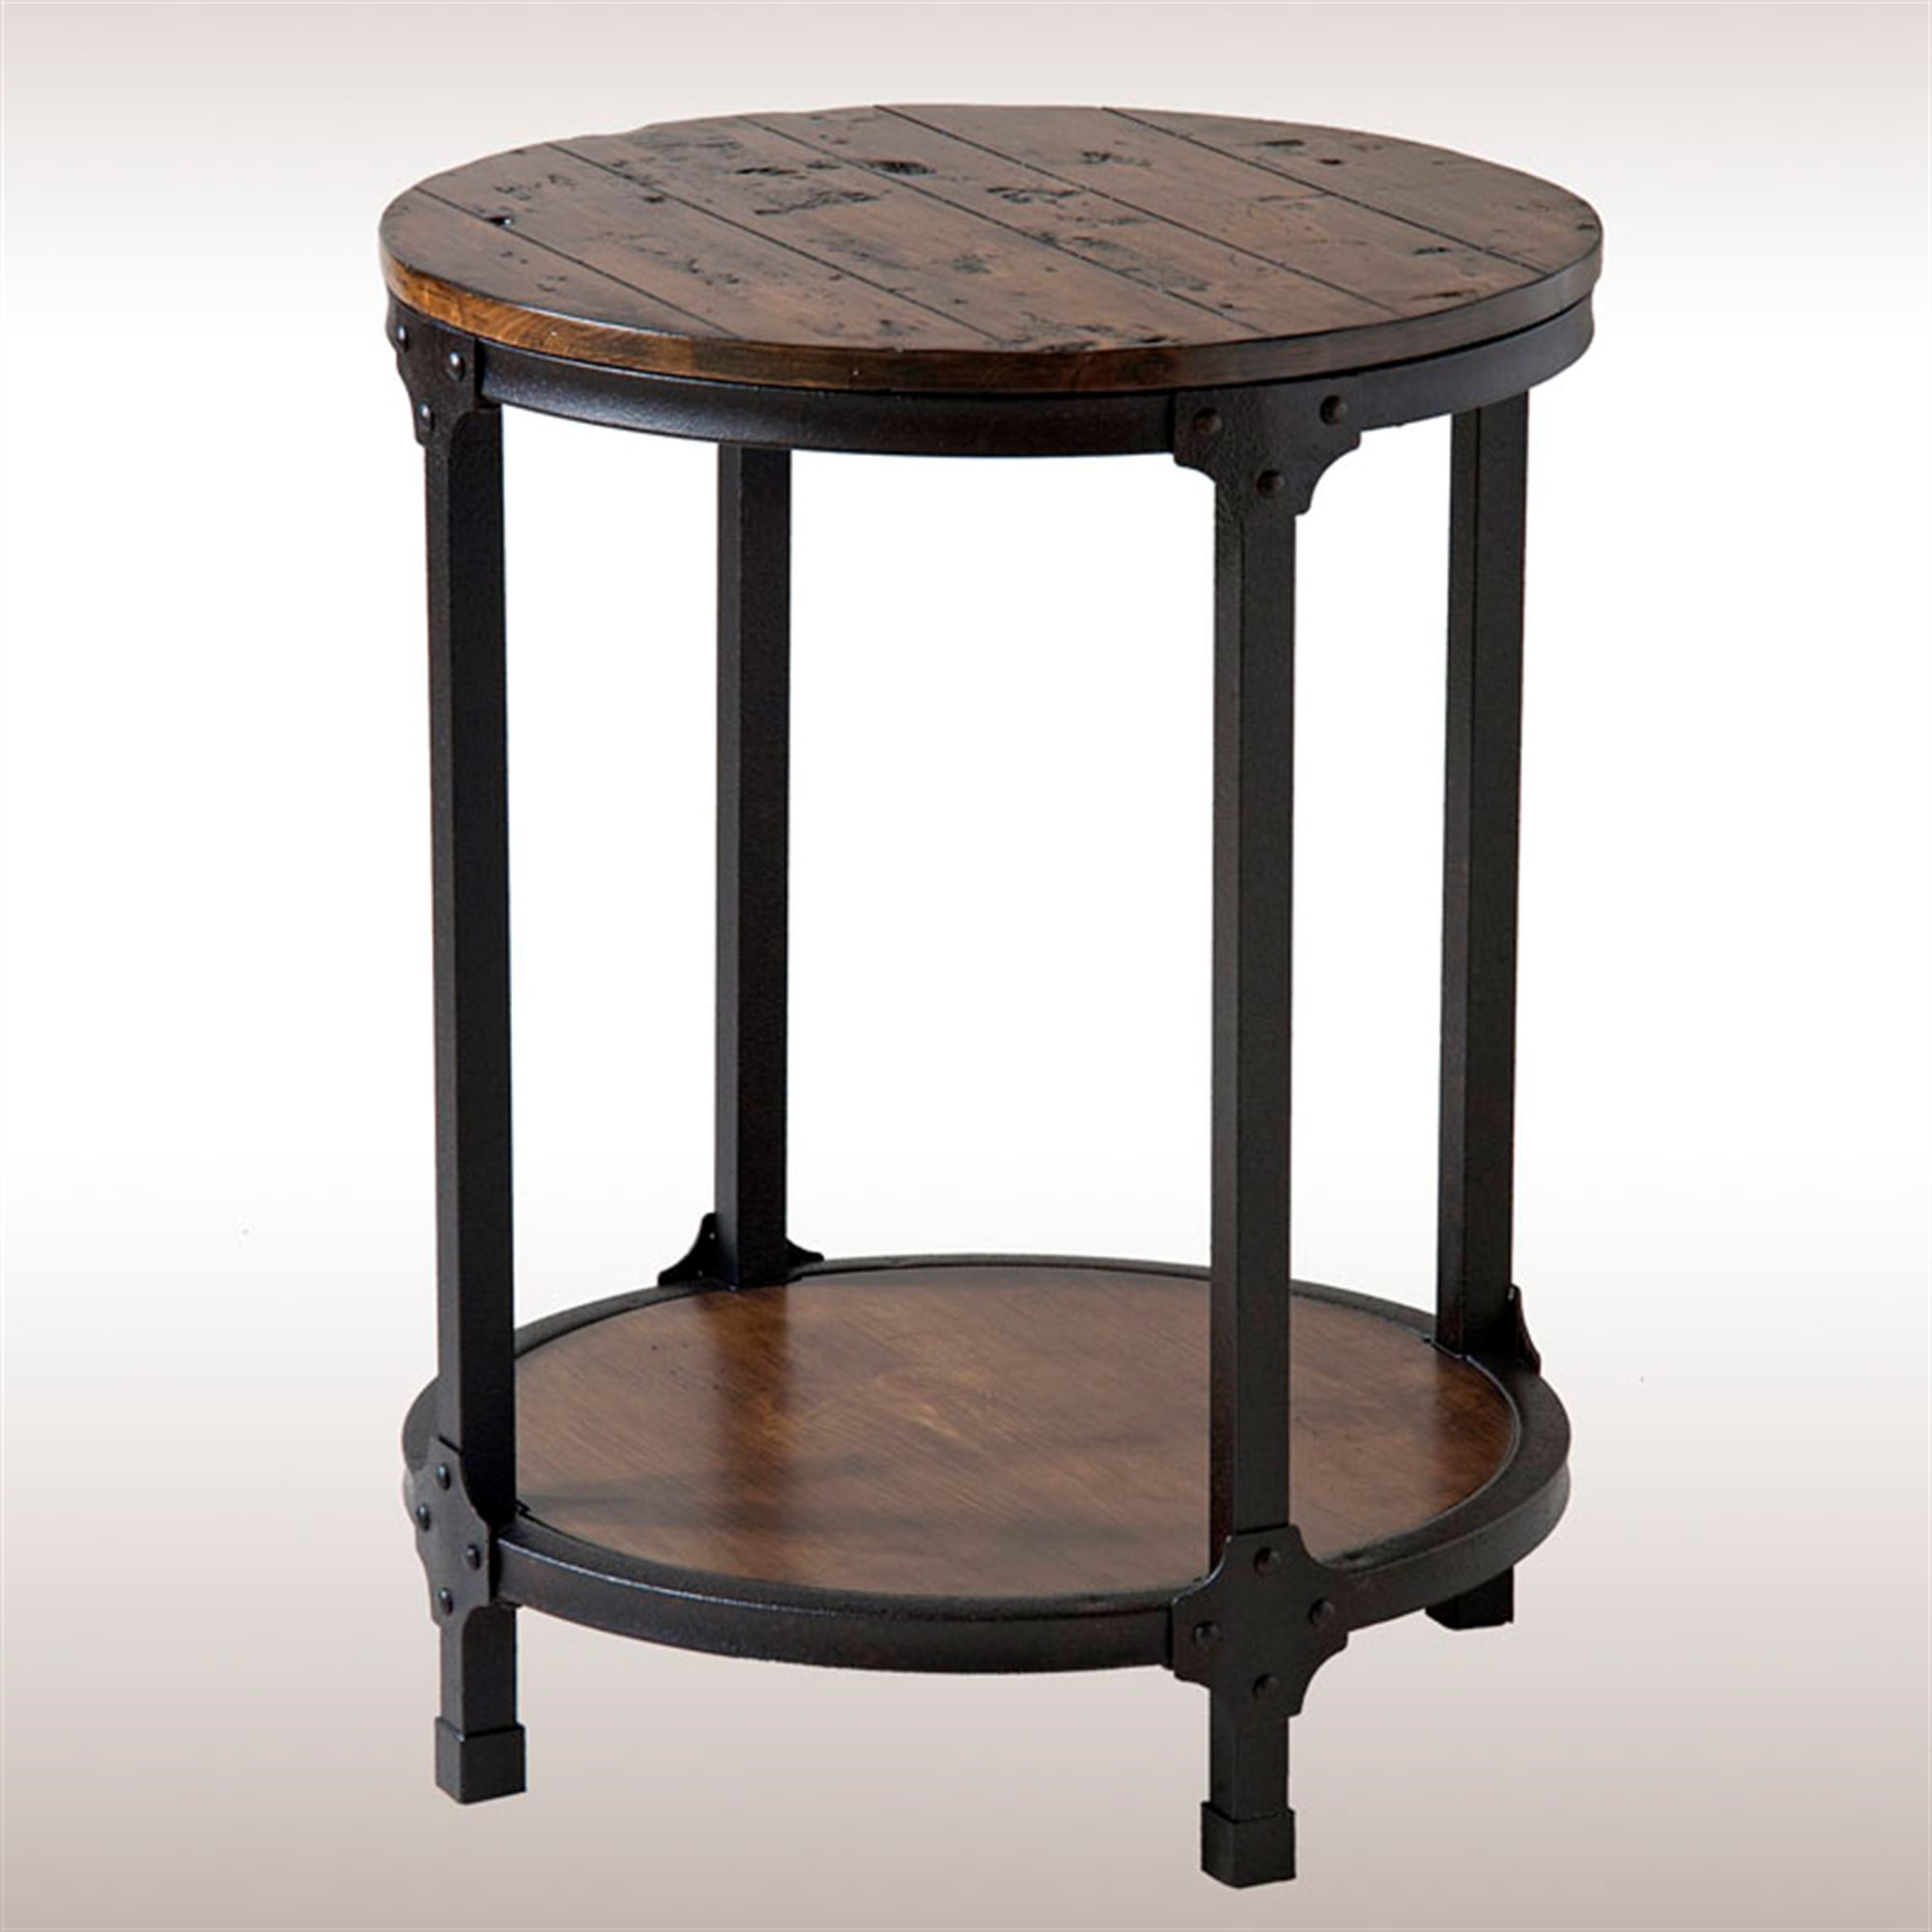 macon rustic round accent table with drawer touch zoom gold lamp wood and acrylic coffee butler tray inch furniture world best drum throne under counter height mosaic patio three